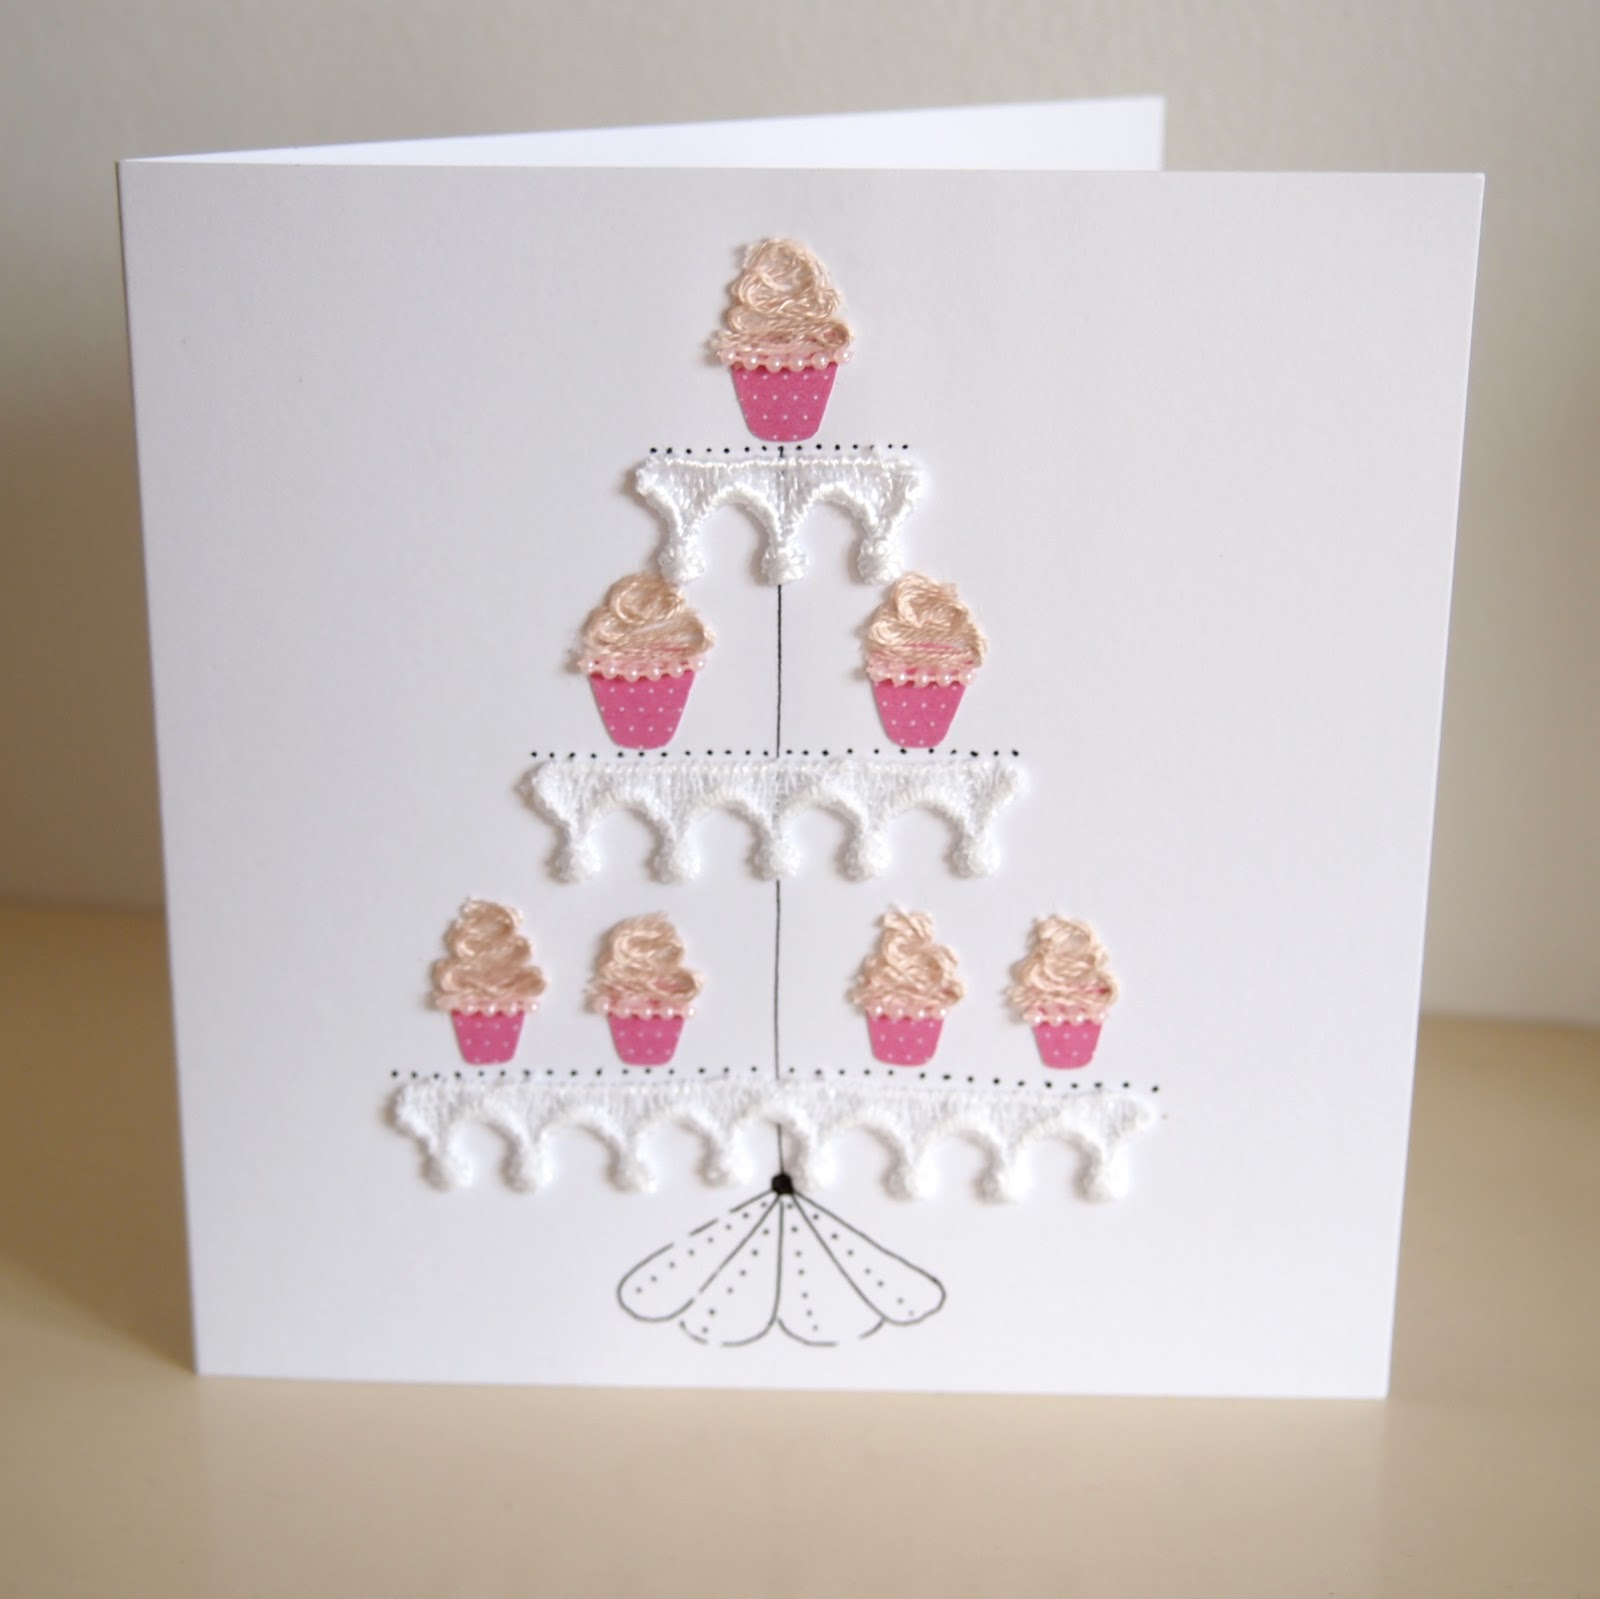 images of handmade cards - photo #4